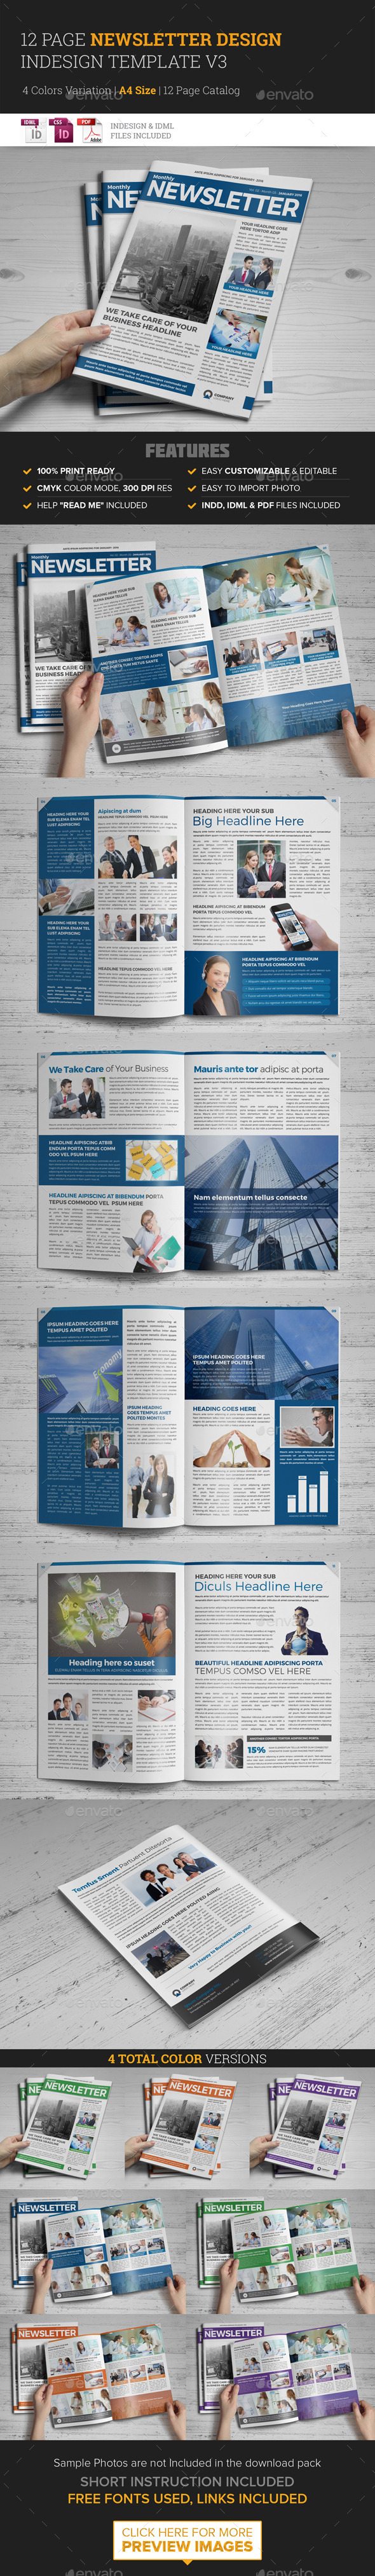 Newsletter Indesign Template v3  - Newsletters Print Templates